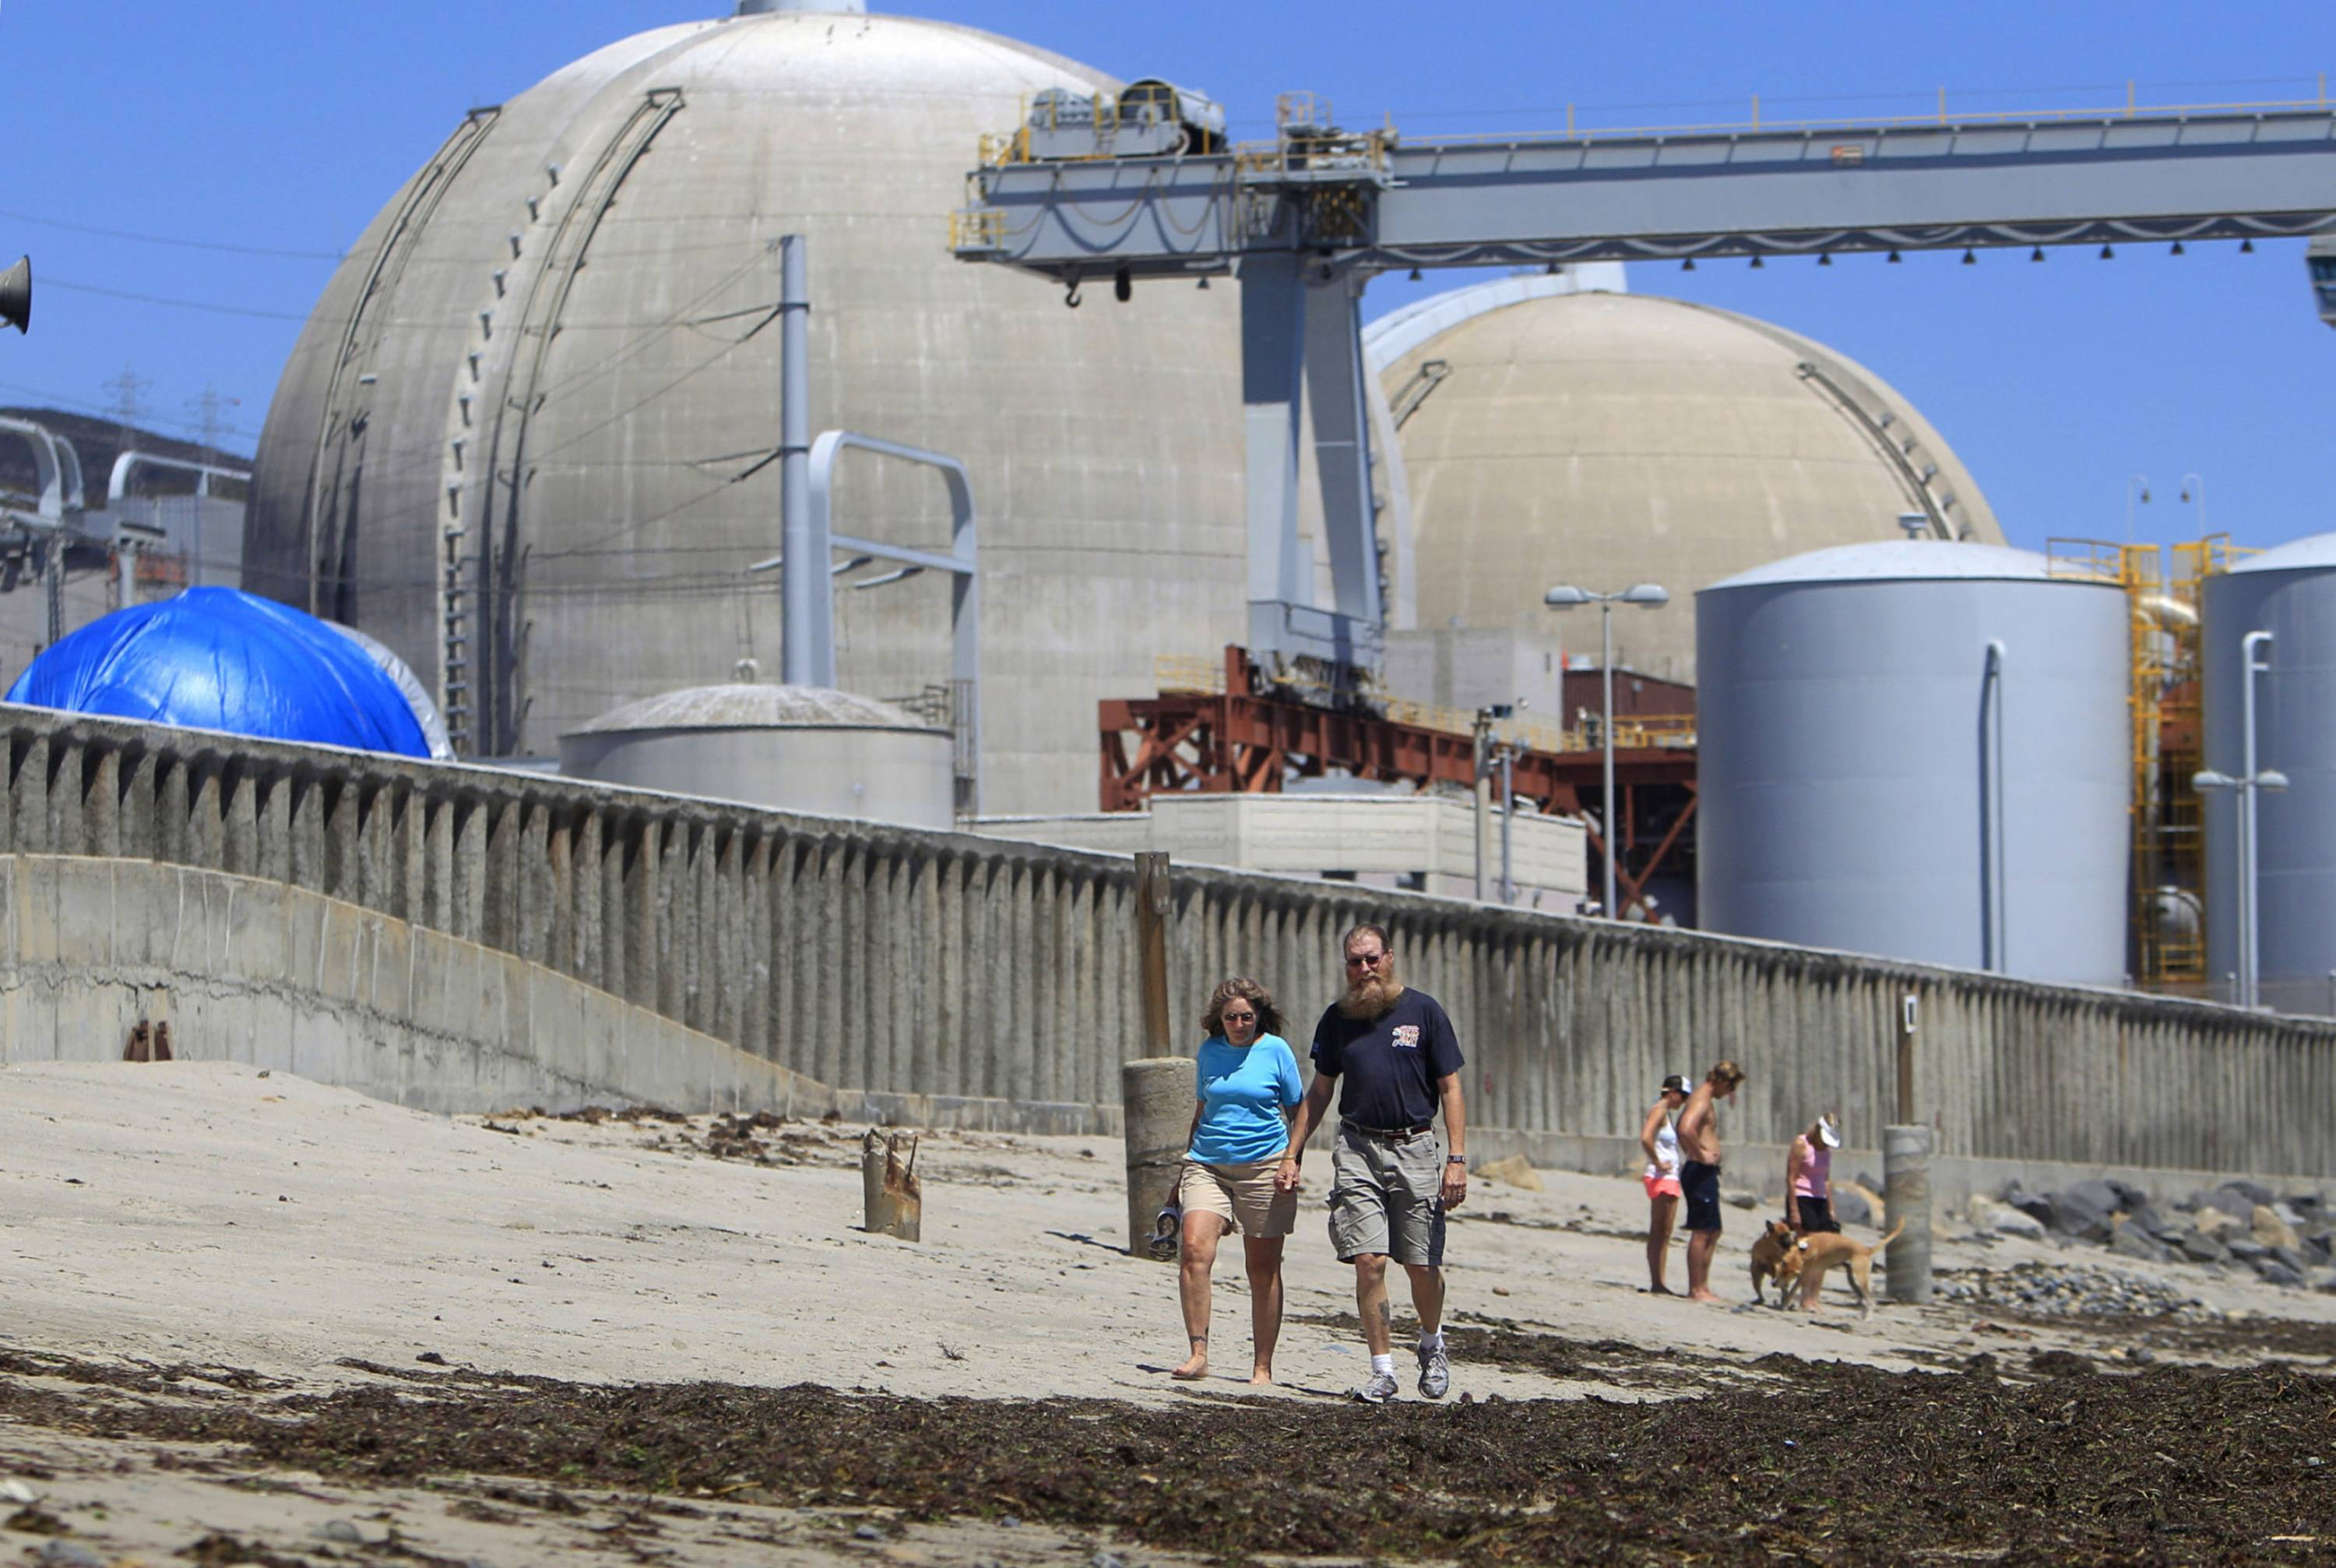 Beach-goers walking on the sand near the San Onofre nuclear power plant in San Clemente, Calif.